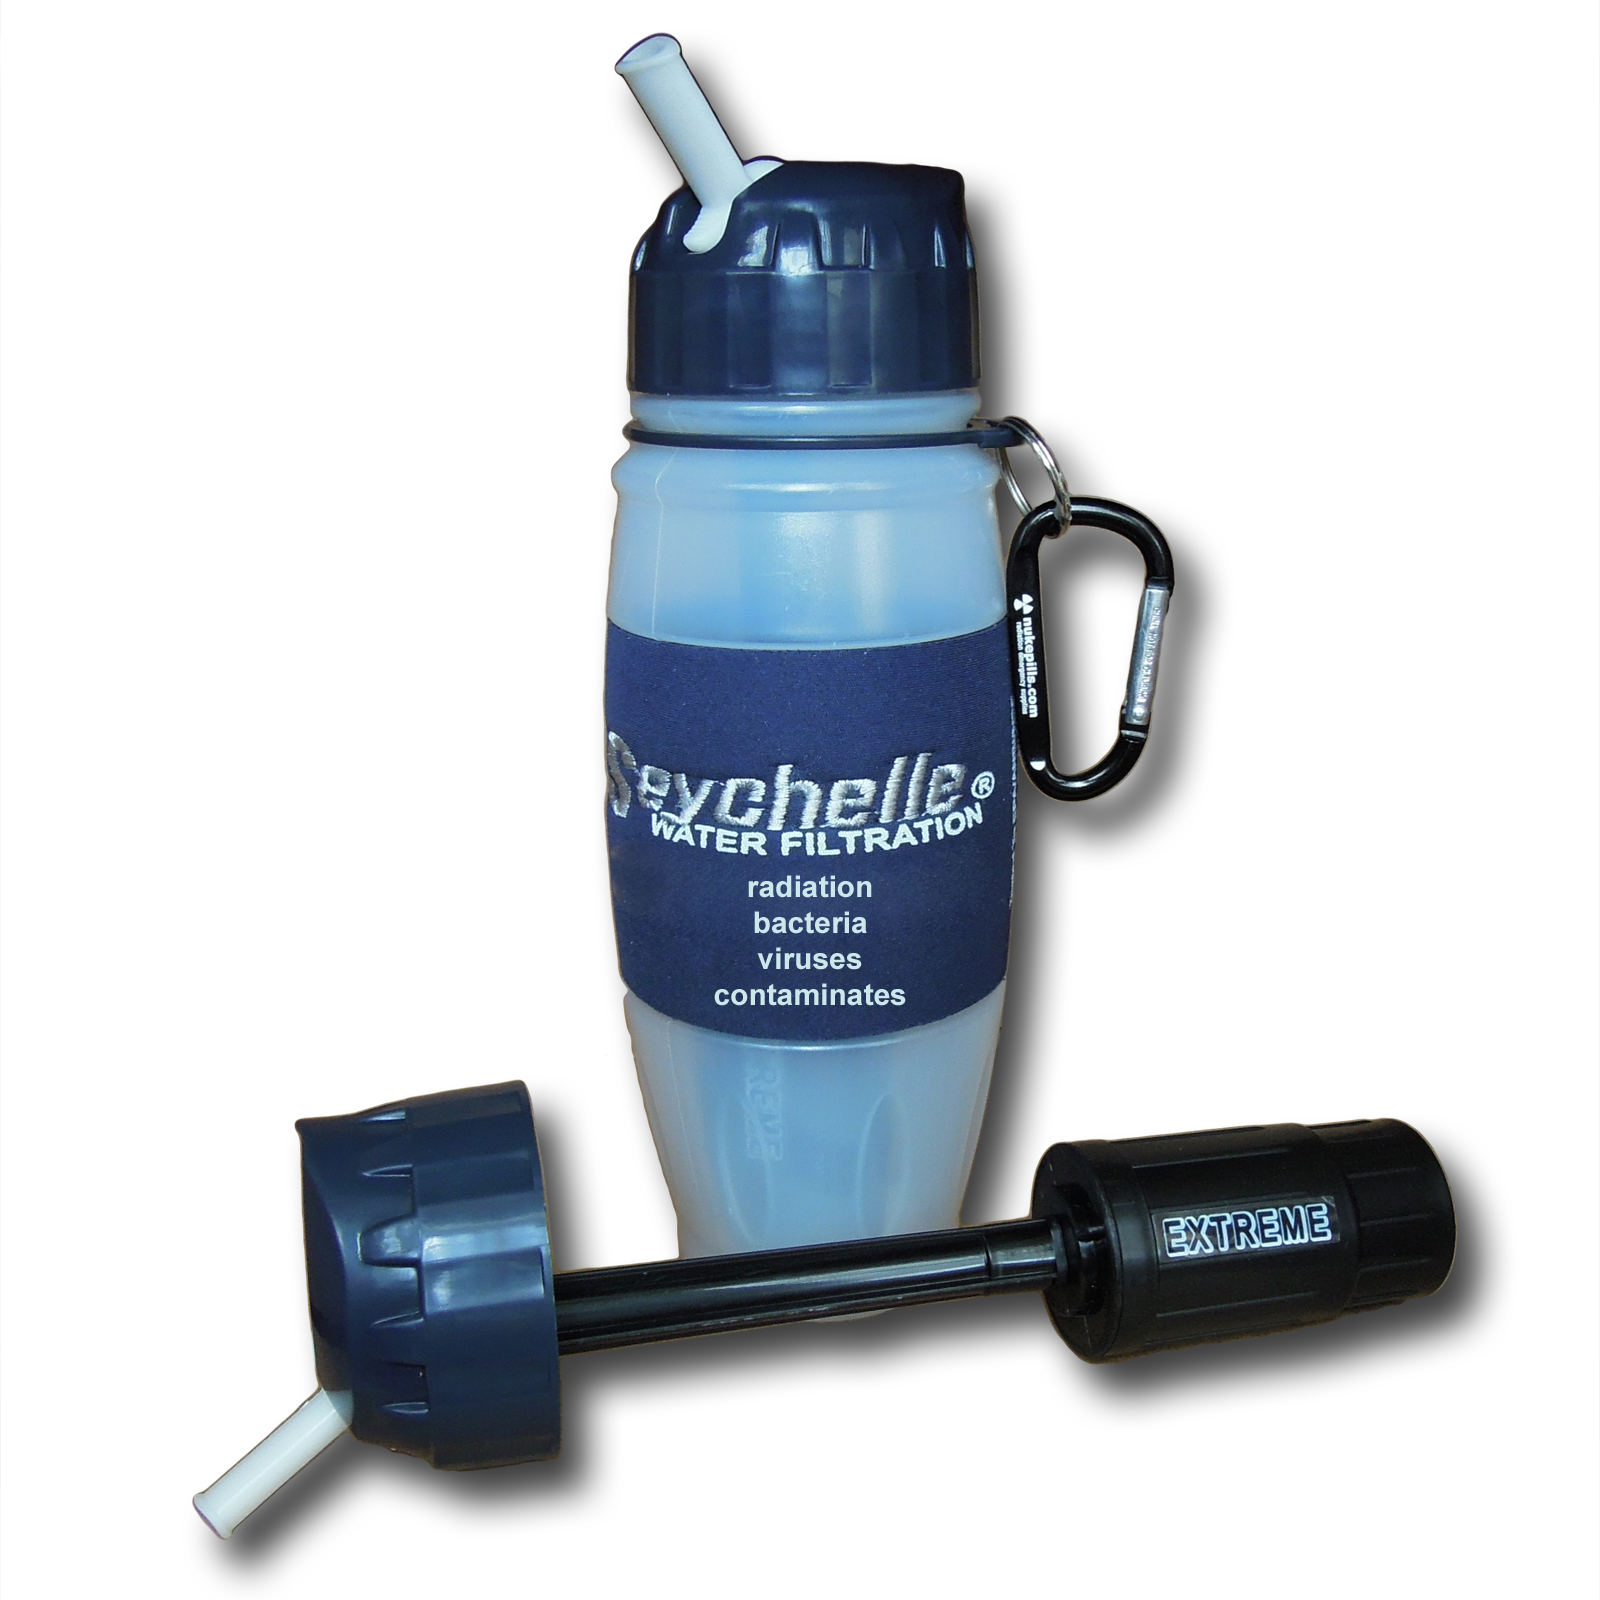 Seychelle Extreme Water Filtration Products